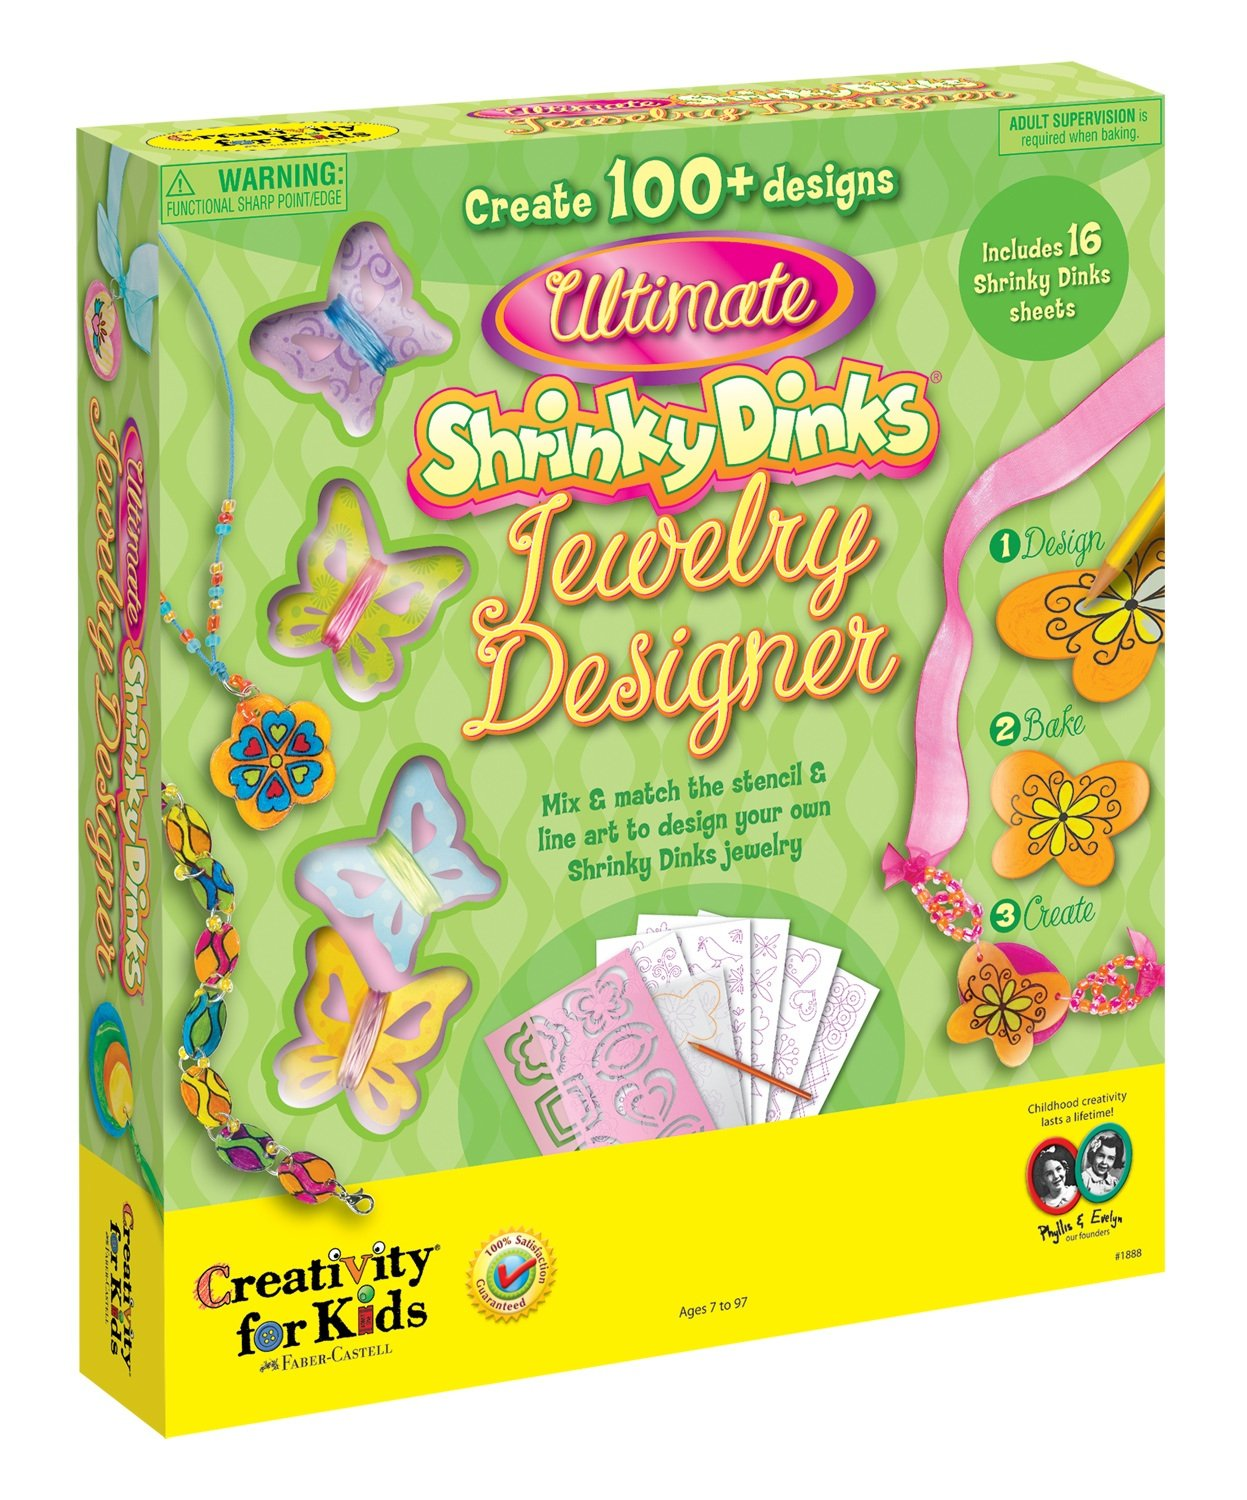 Ultimate ®Shrinky Dinks Jewelry Designer $14.95